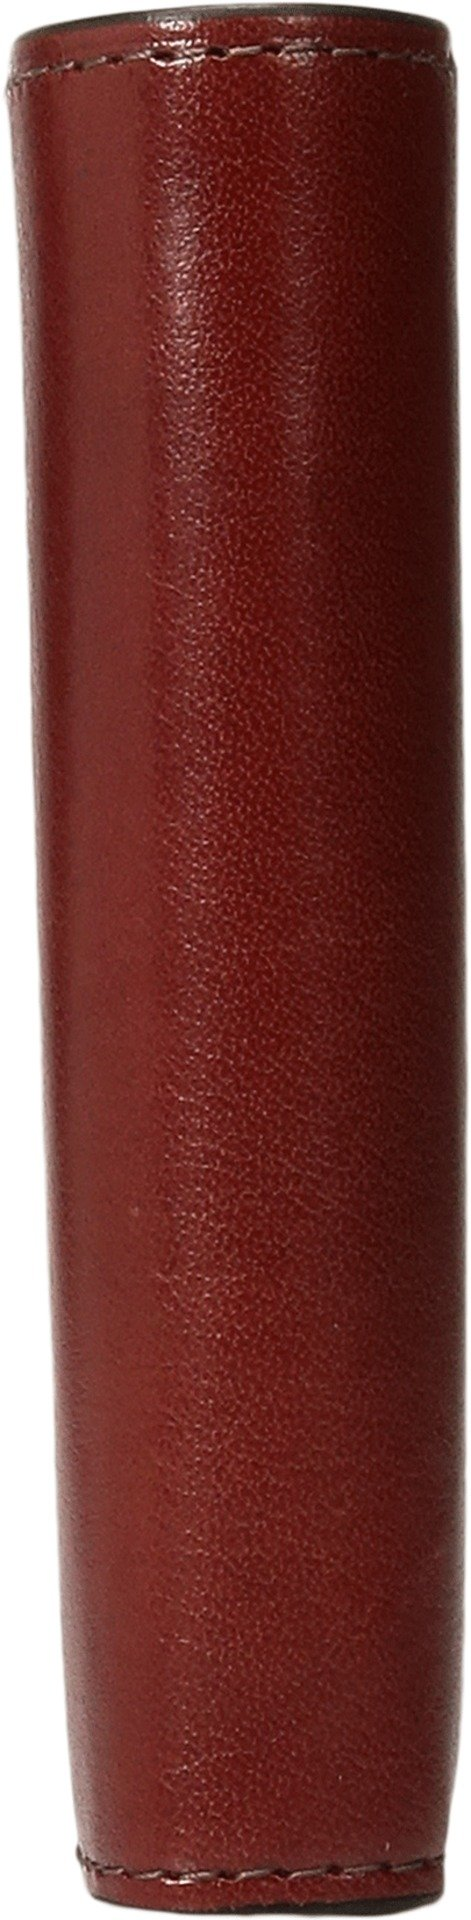 Bosca Men's Old Leather Collection - Eight-Pocket Deluxe Executive Wallet w/Passcase (Cognac) by Bosca (Image #3)